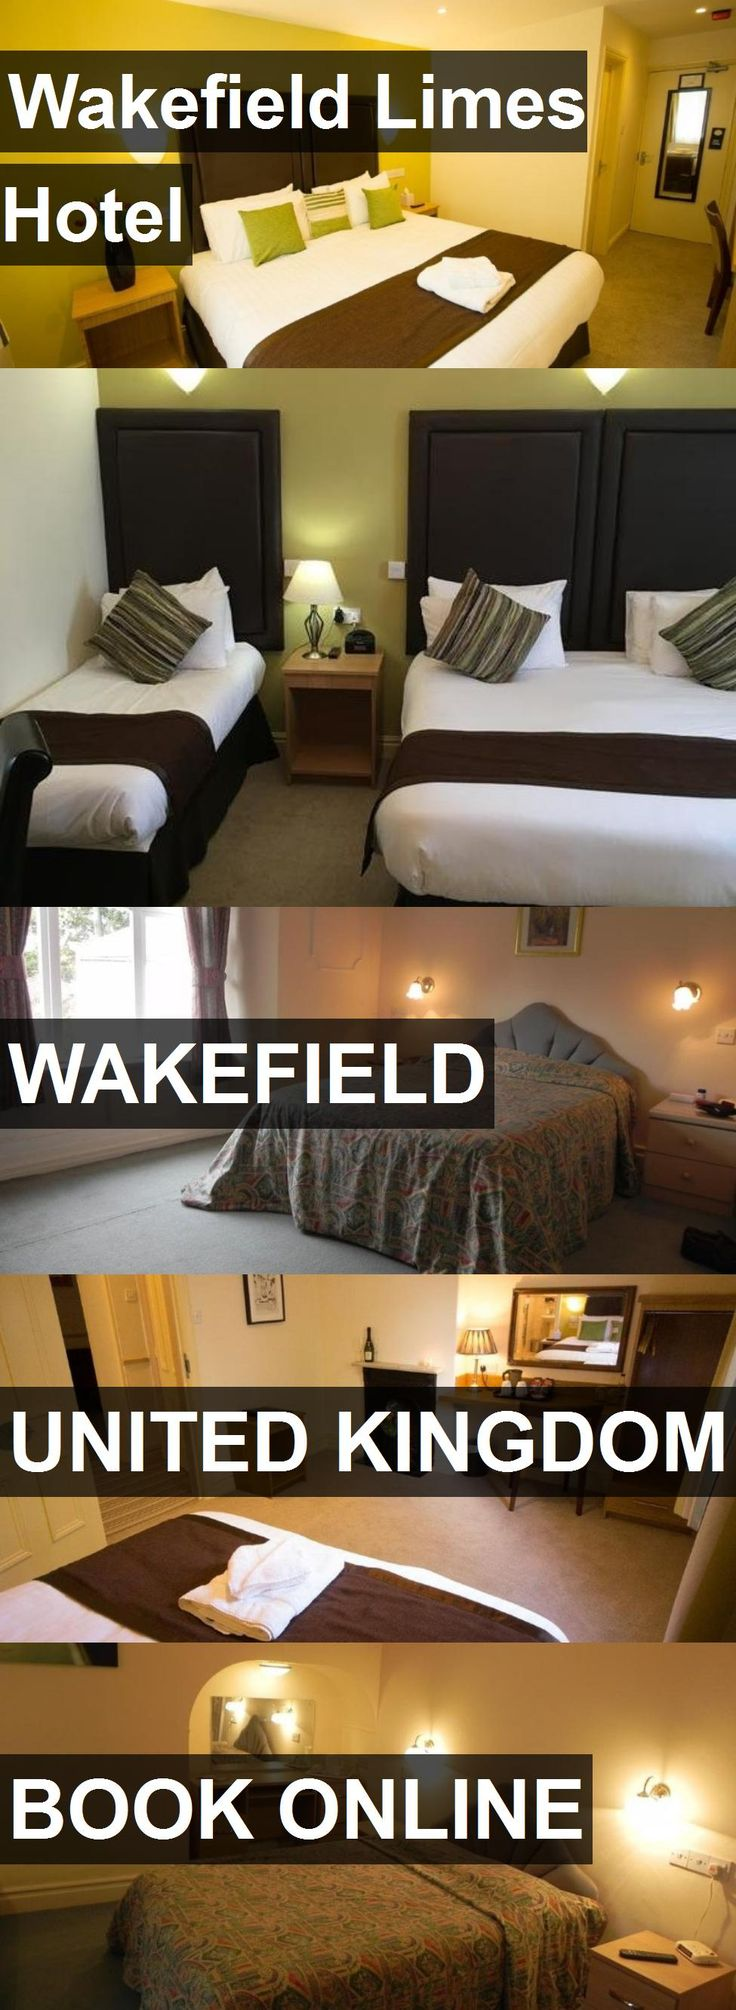 Wakefield Limes Hotel in Wakefield, United Kingdom. For more information, photos, reviews and best prices please follow the link. #UnitedKingdom #Wakefield #travel #vacation #hotel